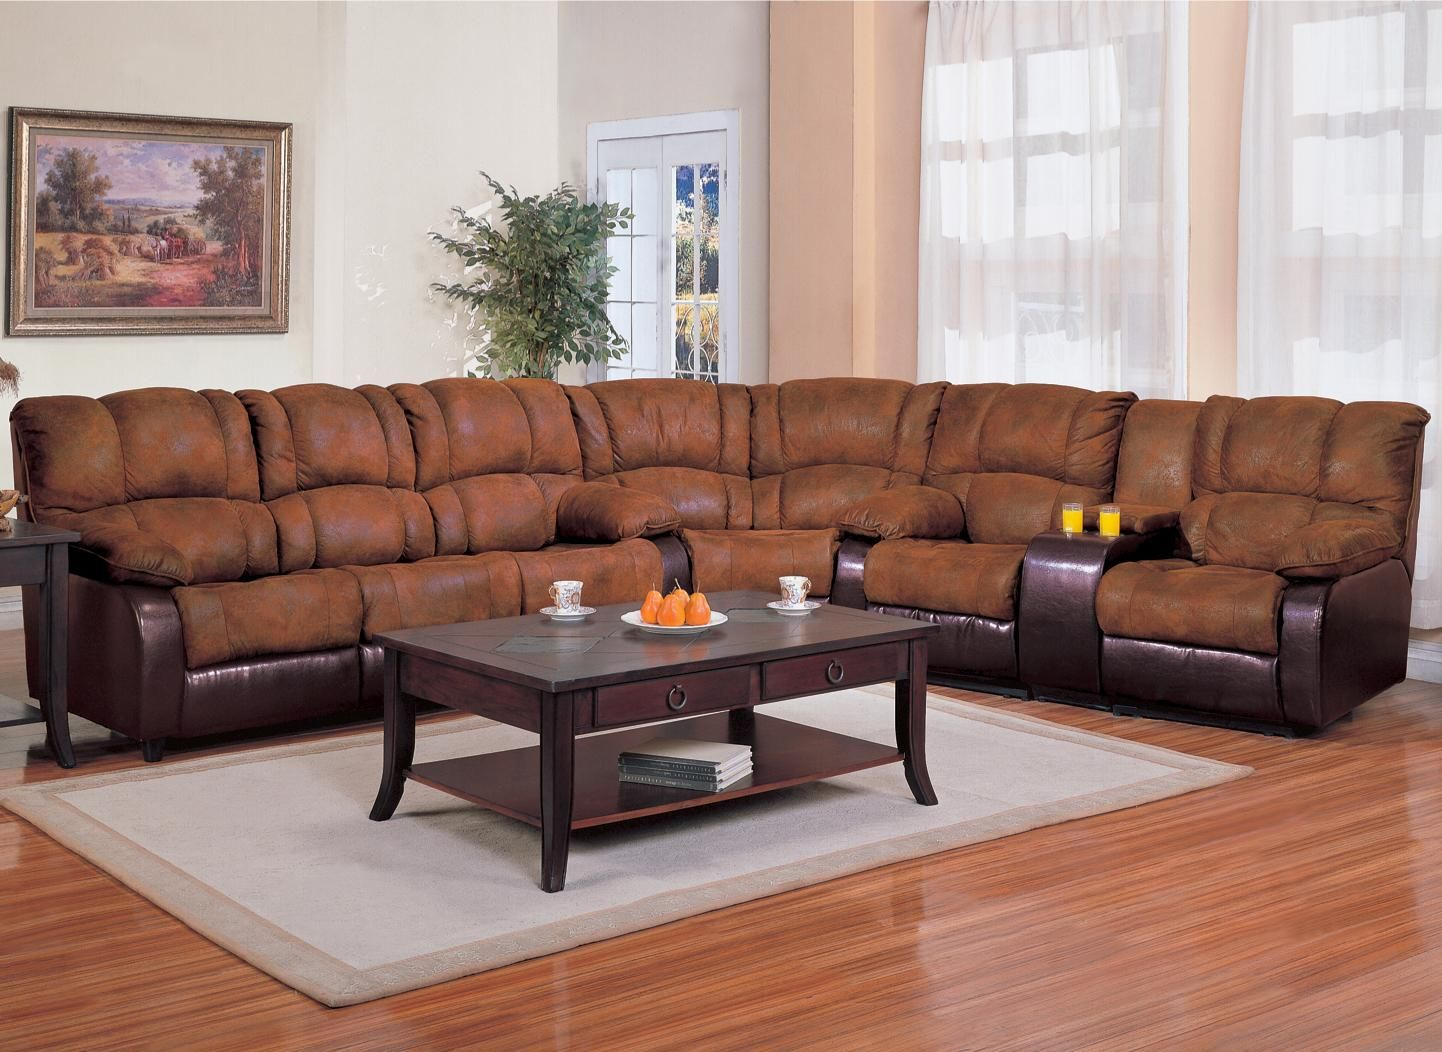 Two Tone Living Room Furniture Ronan Contemporary L Shaped Sectional With Sleeper Sofa By Coaster